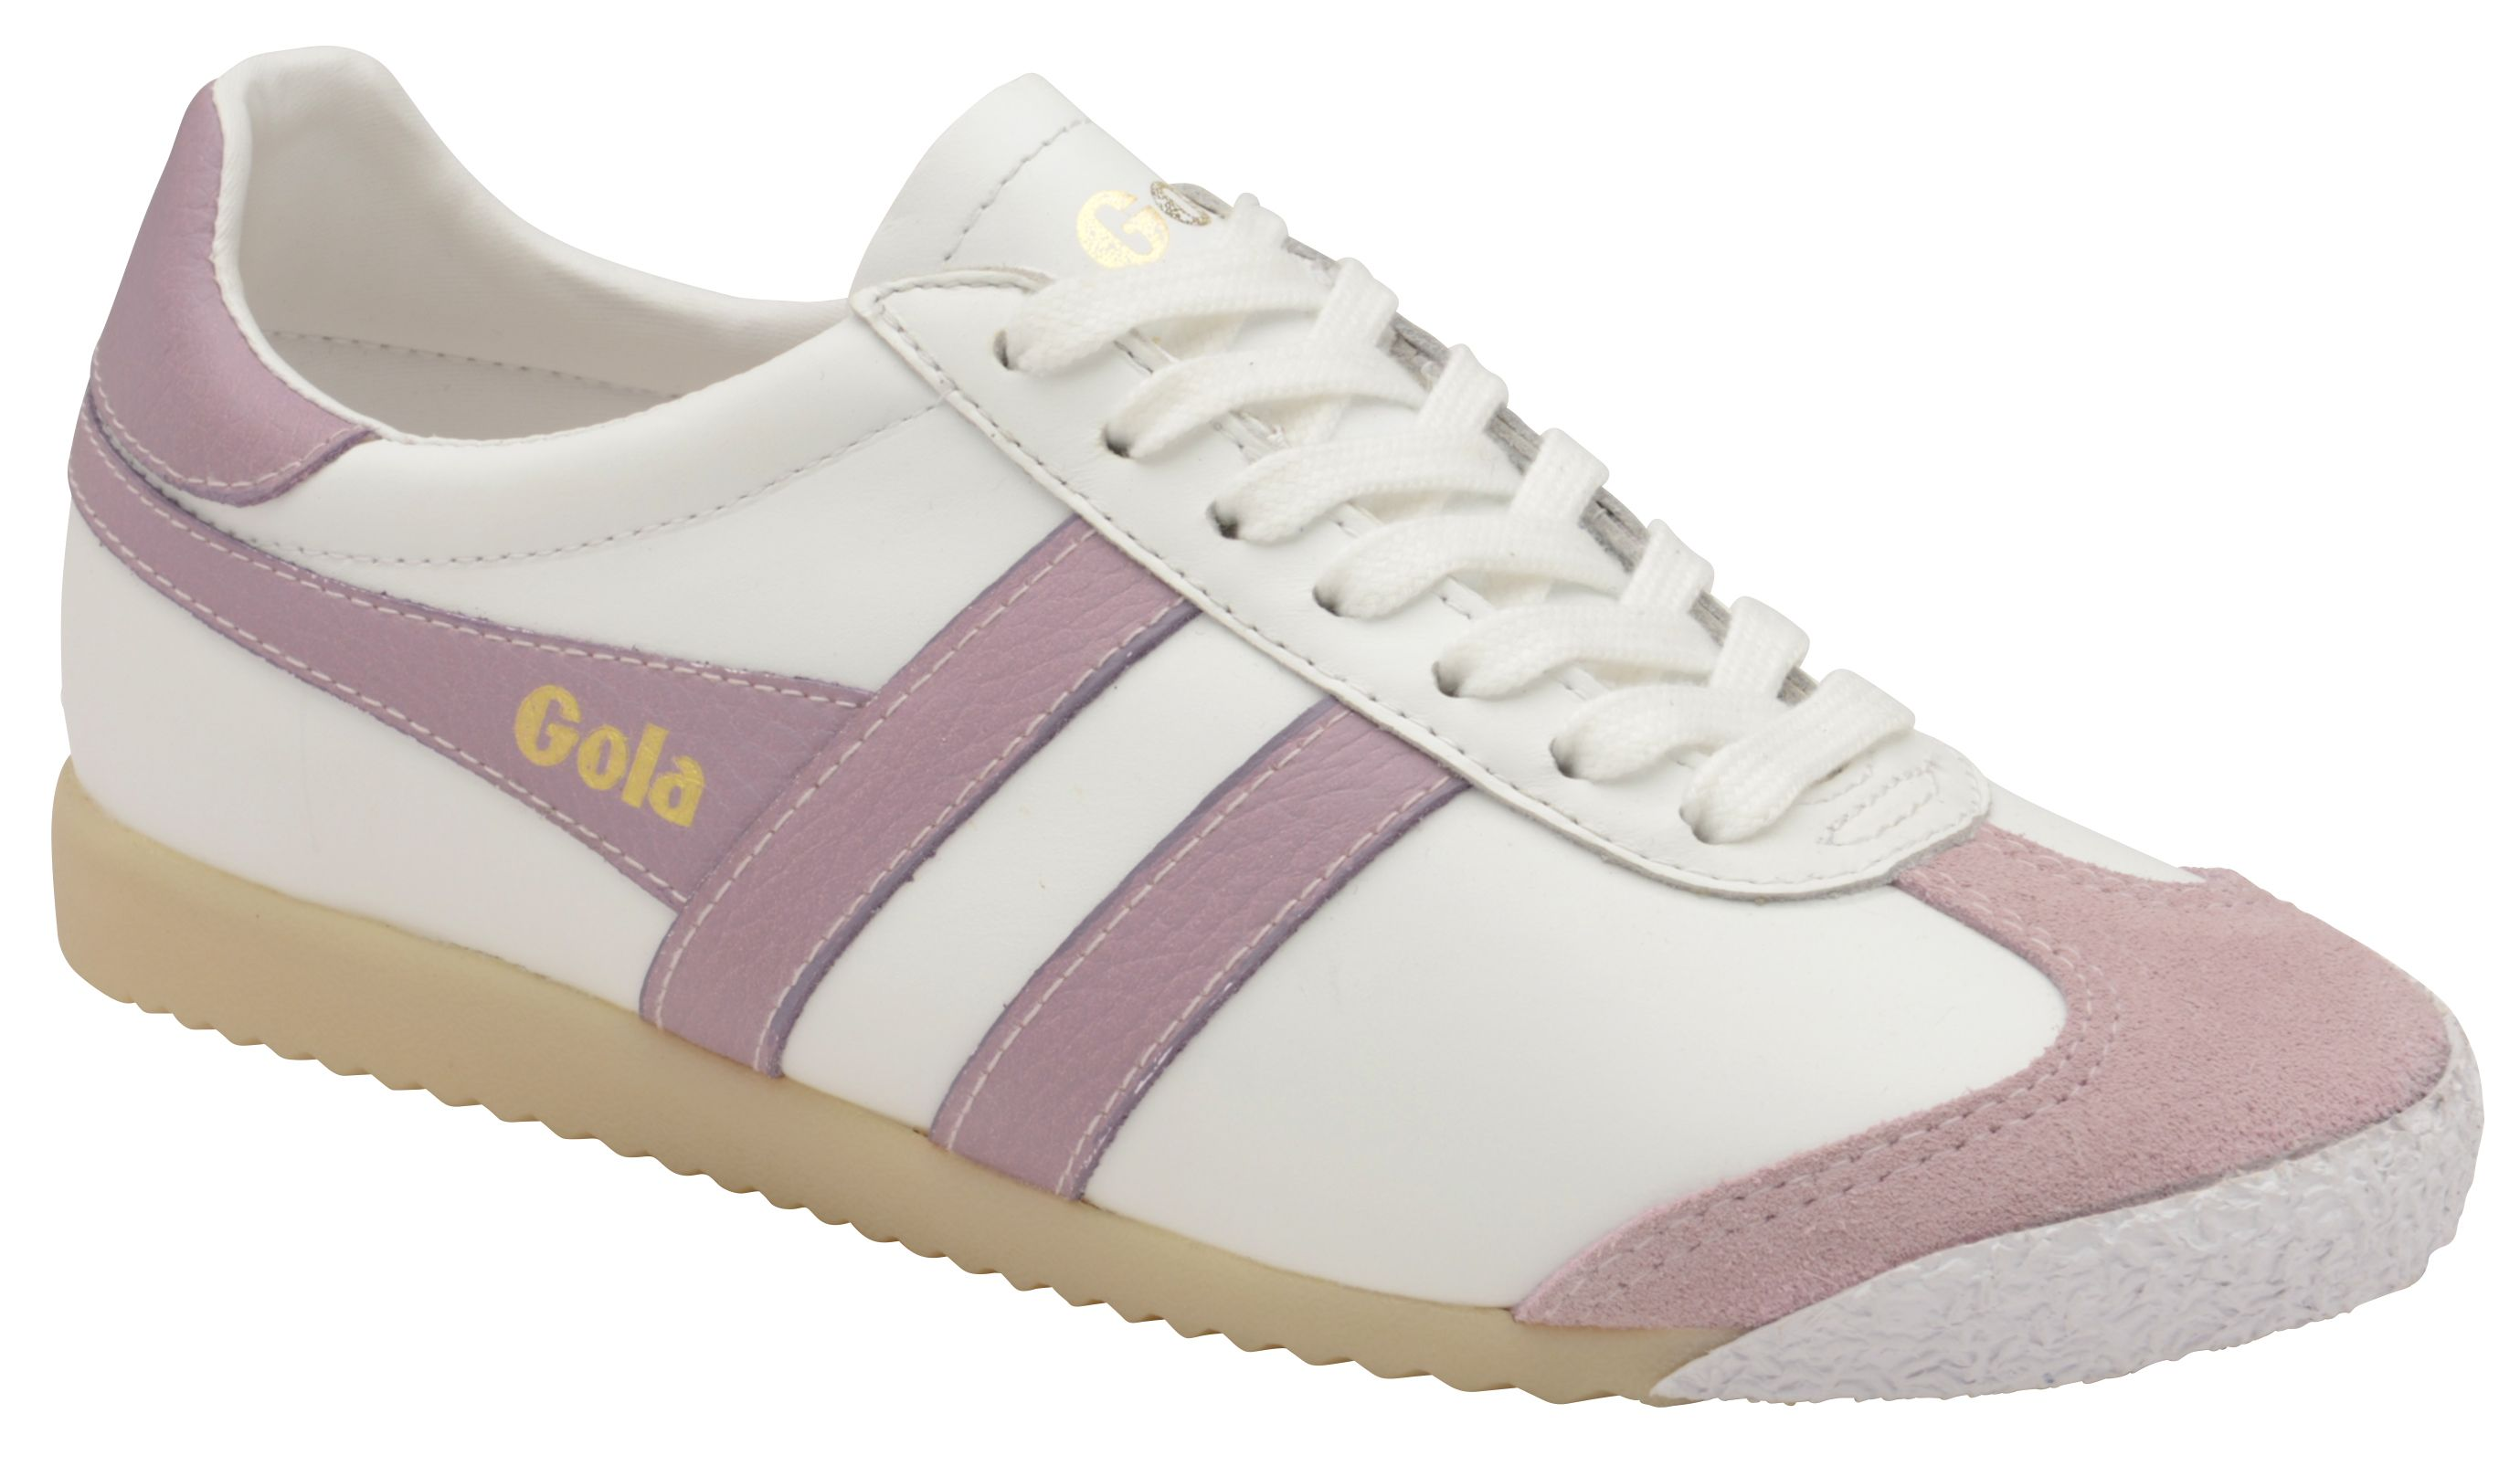 Gola Harrier 50 Leather Lace Up Trainers, Diamond White